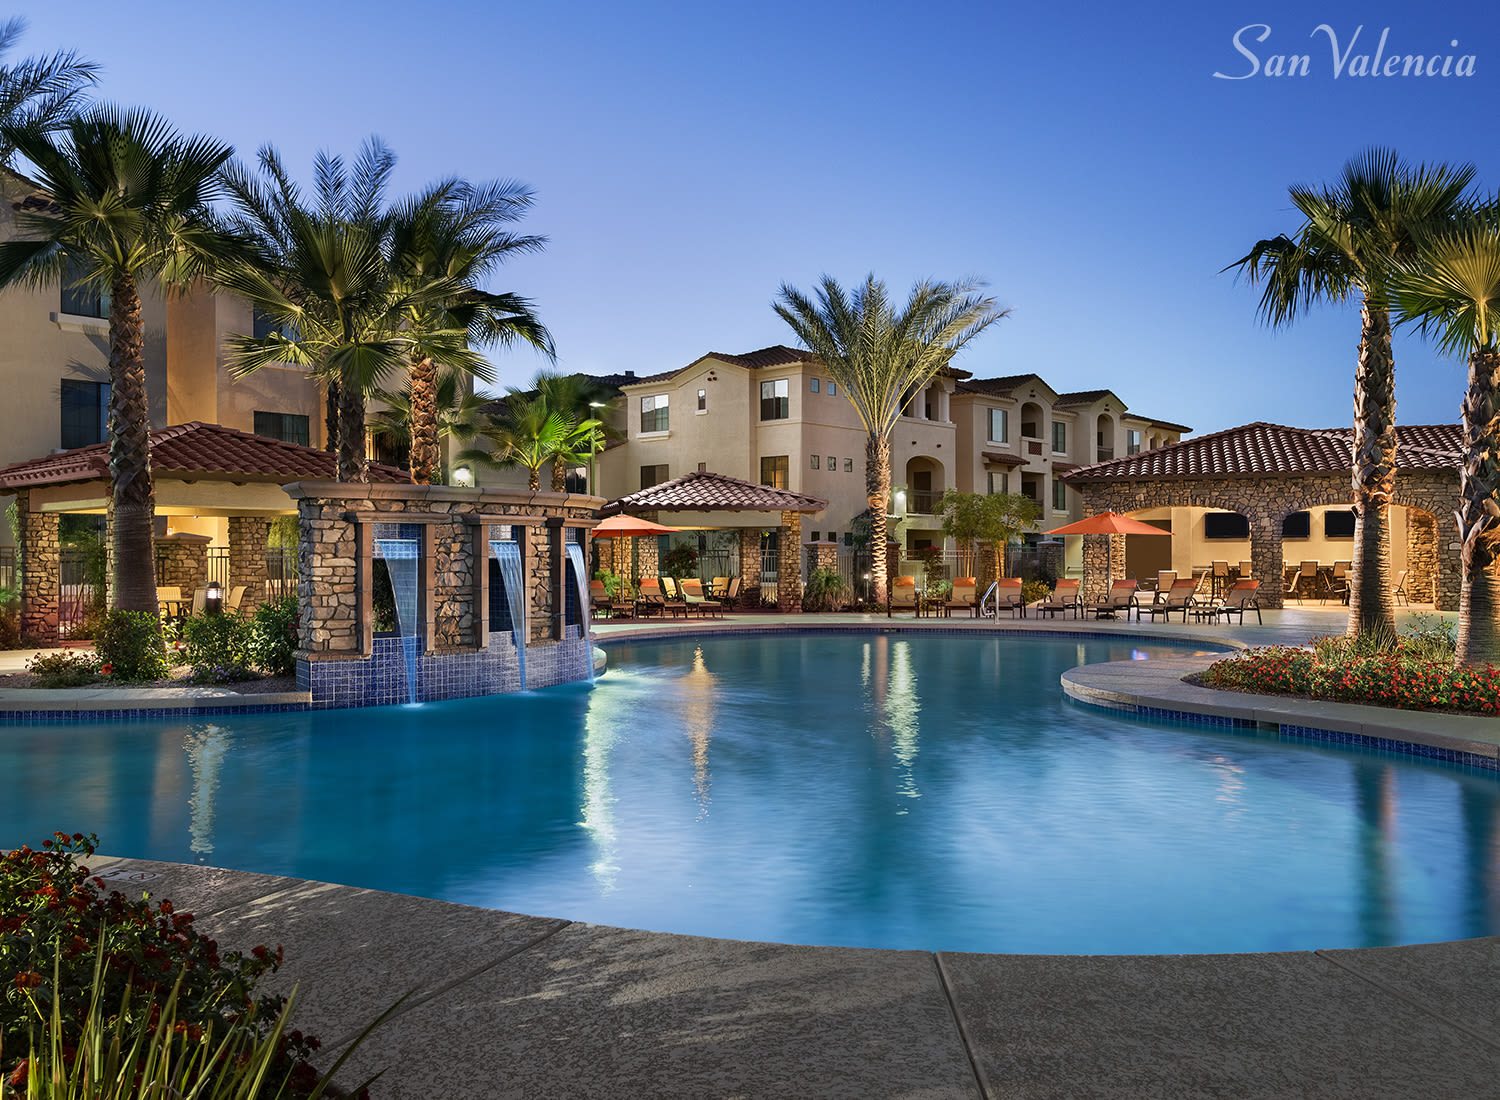 San Valencia apartments in Chandler, Arizona